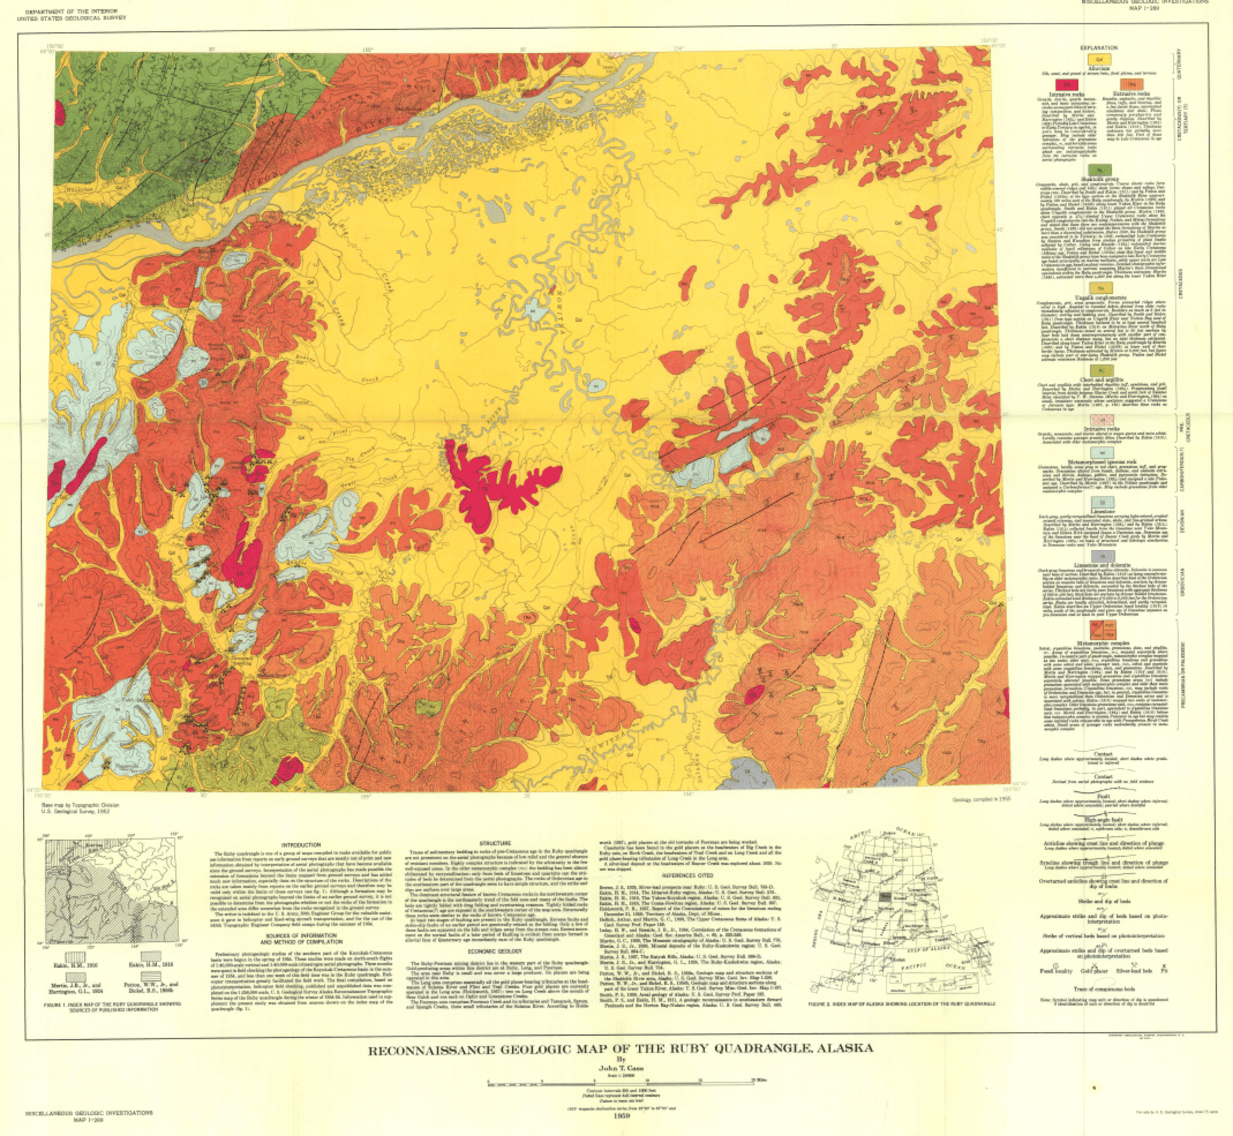 How we used a century of data to create a modern digital geologic